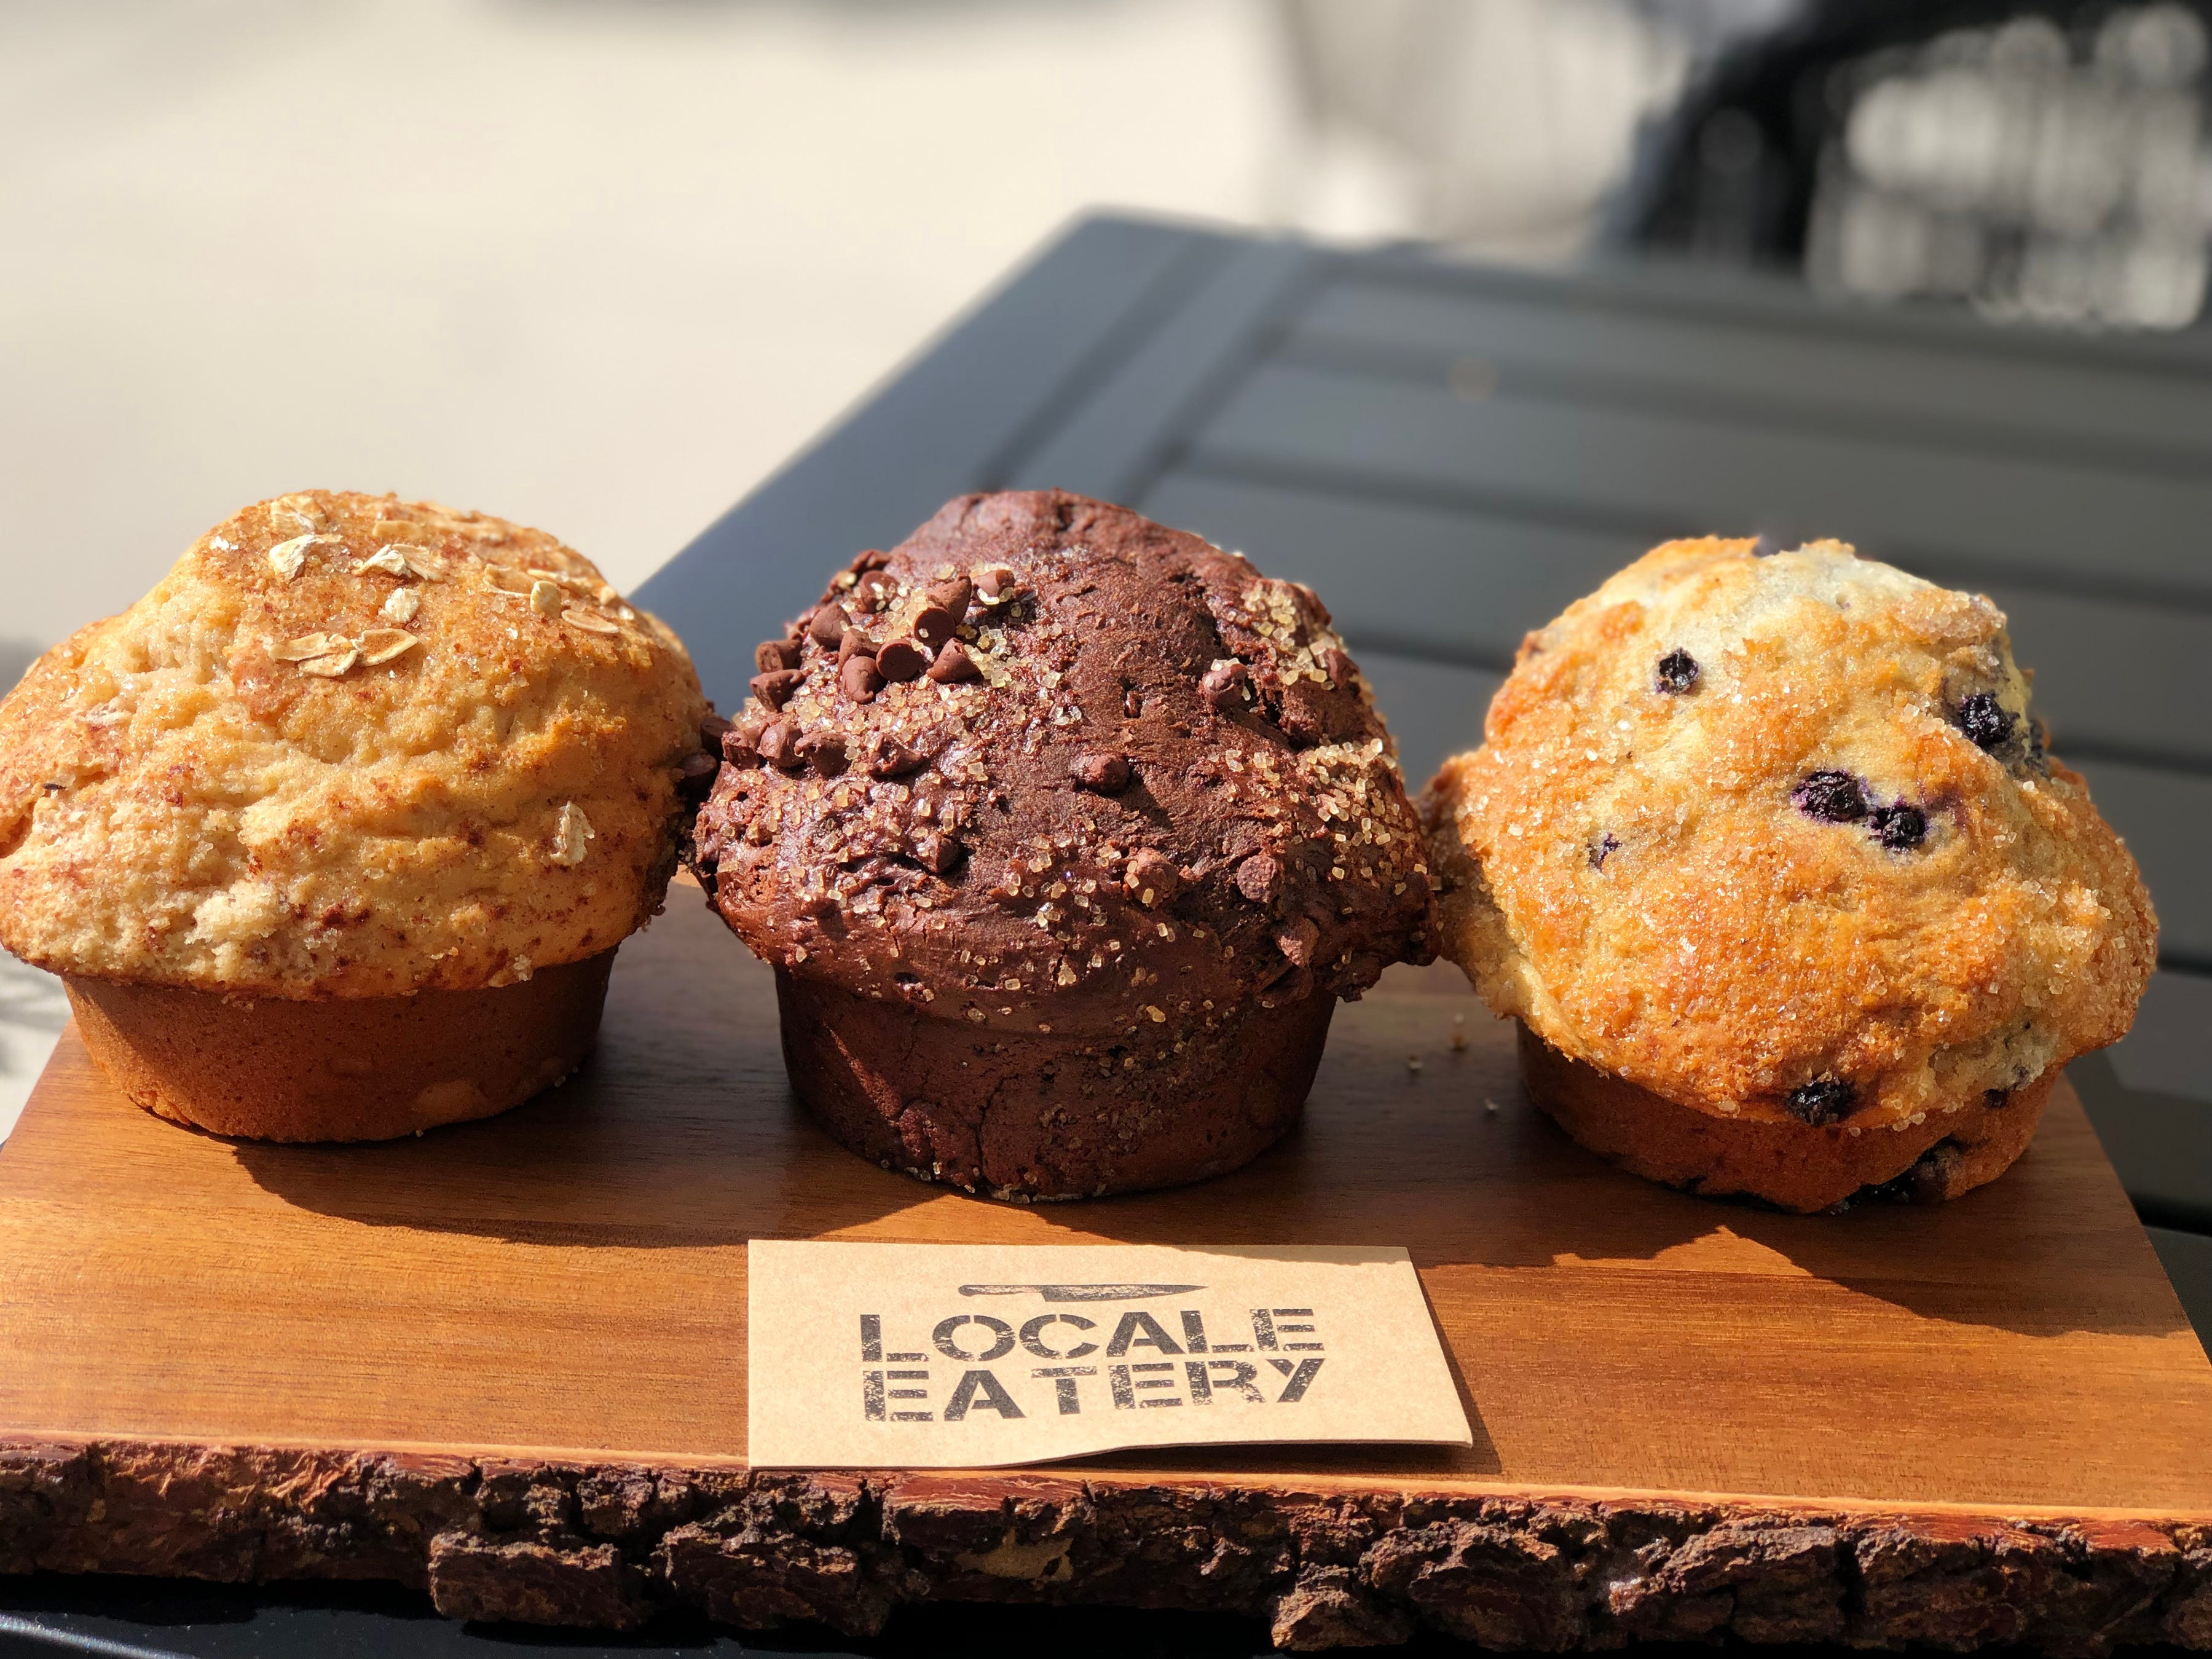 Apple cinnamon oatmeal, double chocolate and blueberry muffins made fresh at Locale Eatery in North Naples.